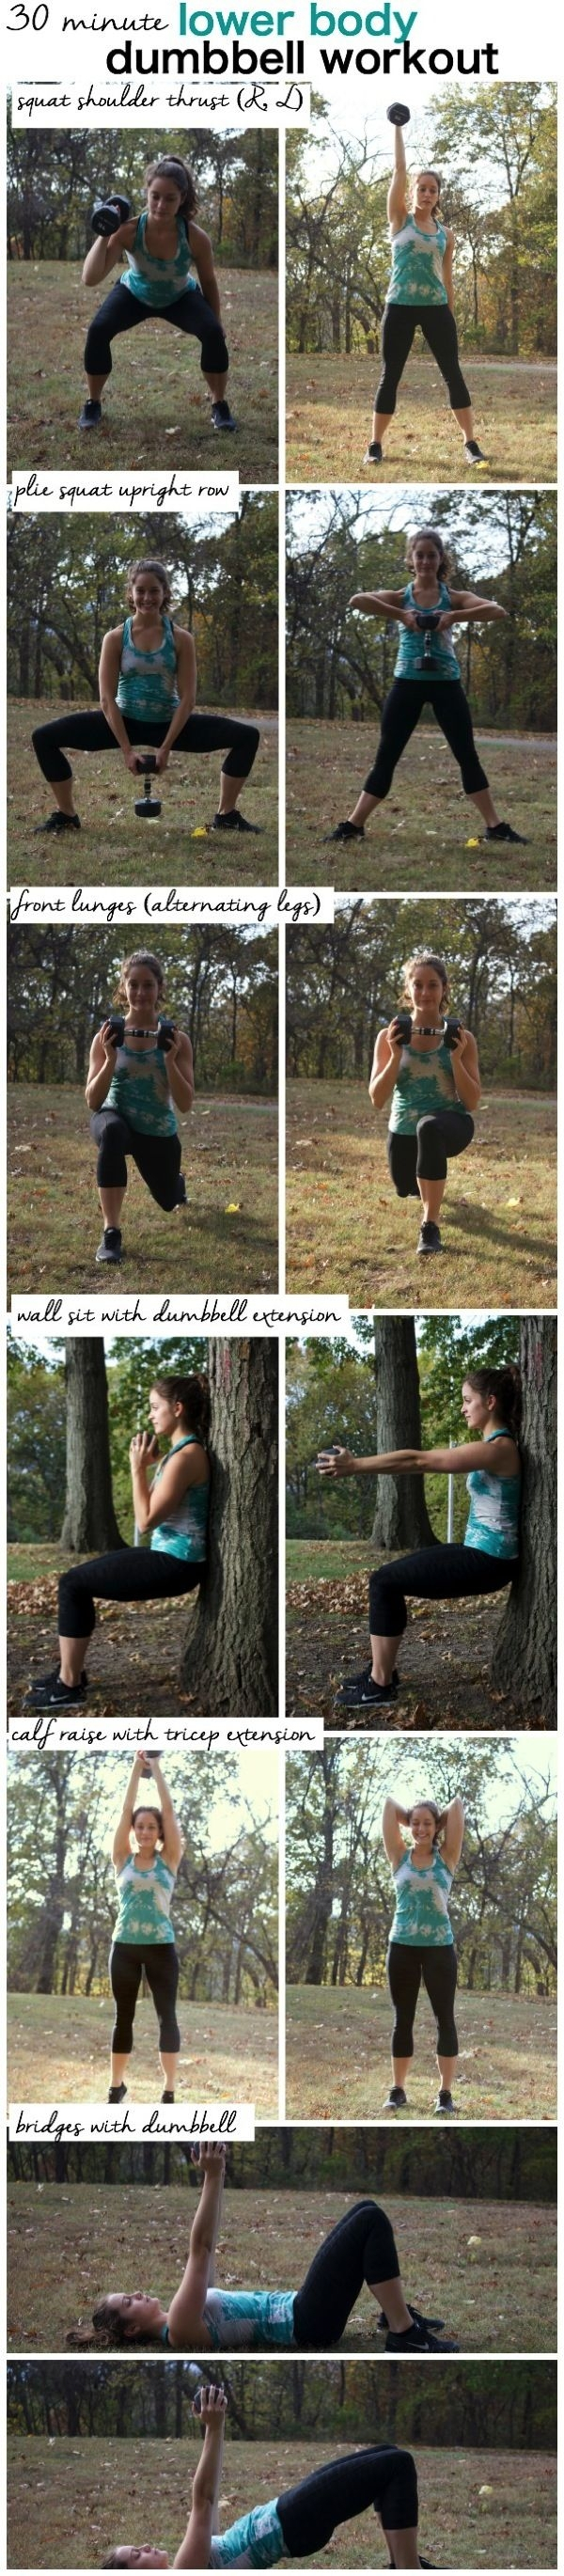 30 Minute Lower Body Dumbbell Workout